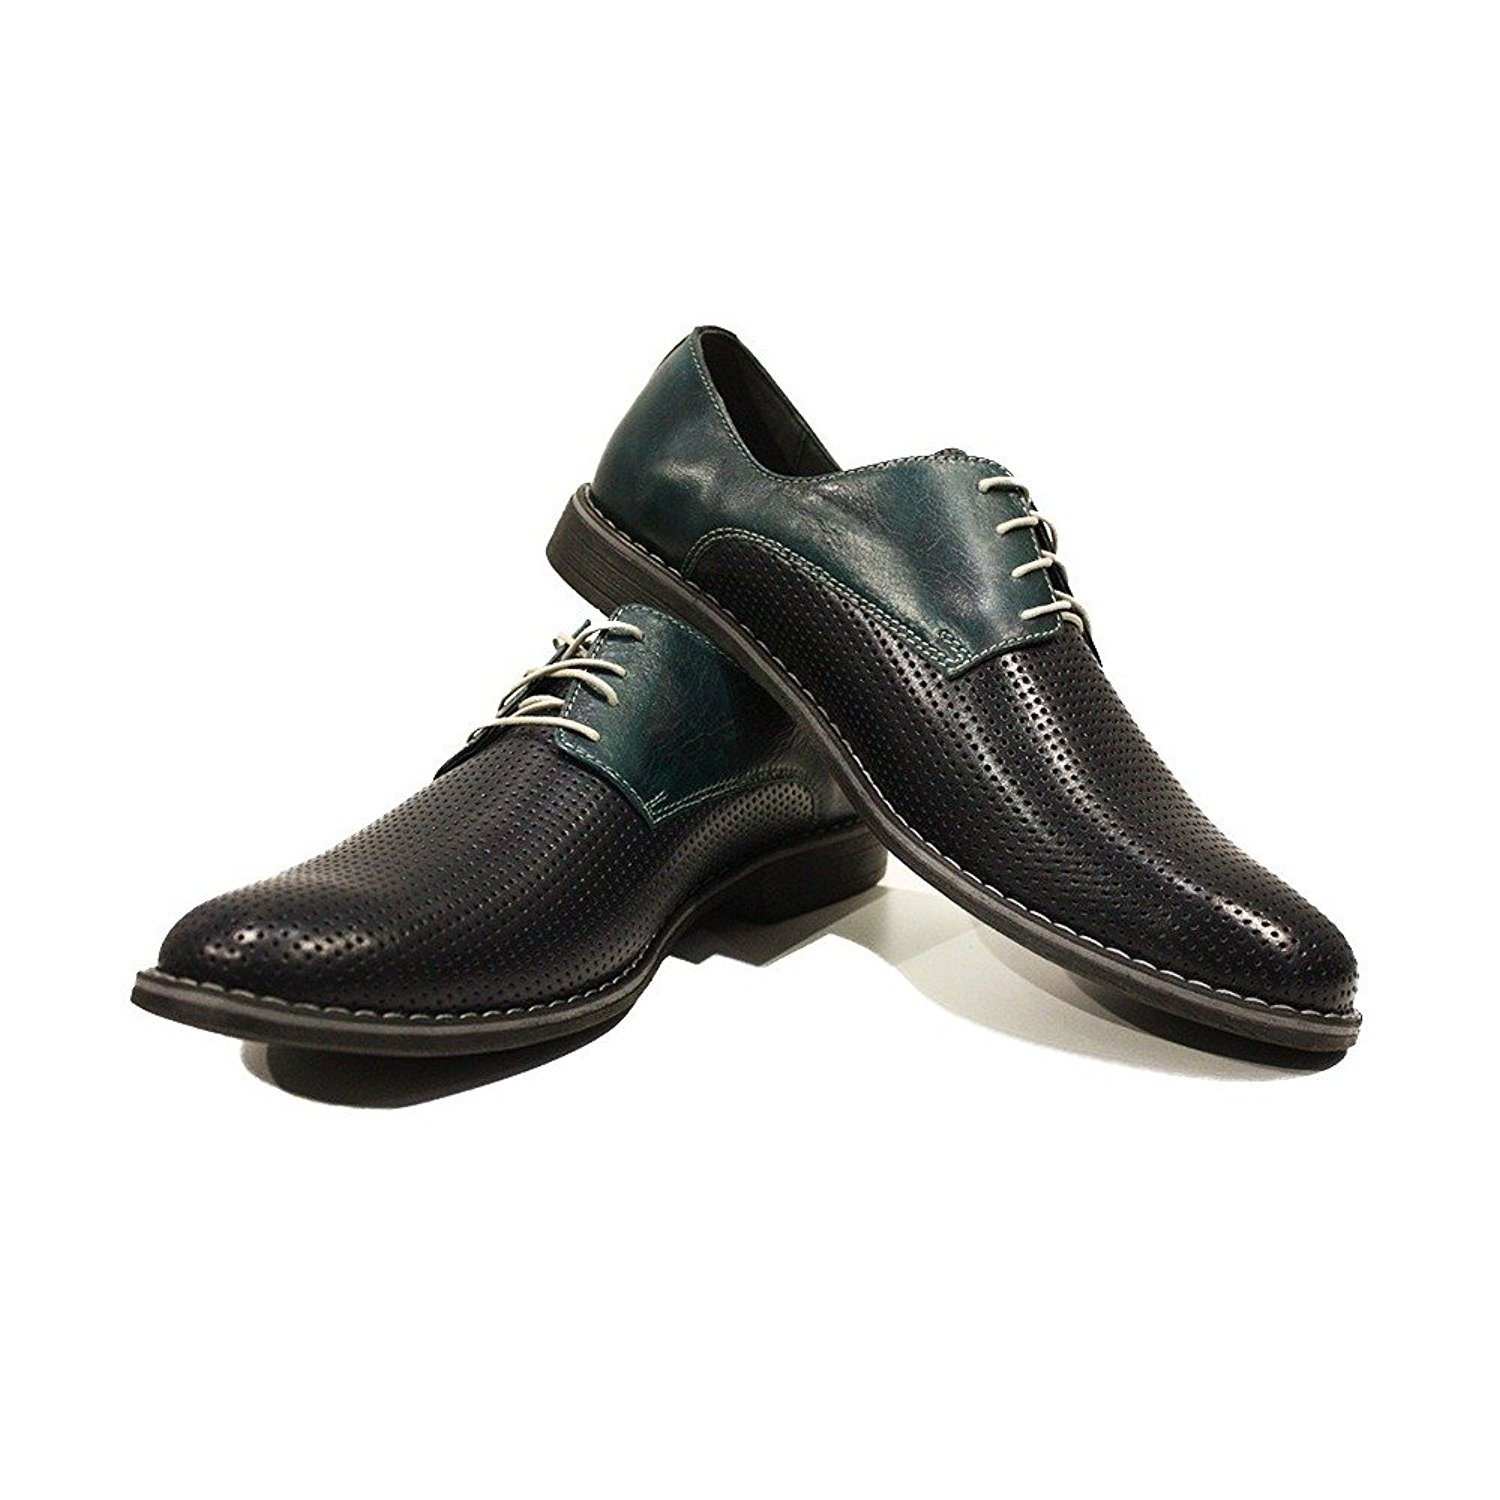 Modello Pancrazio - Handmade Italian Mens Black Oxfords Dress Shoes - Cowhide Embossed Leather - Lace-up